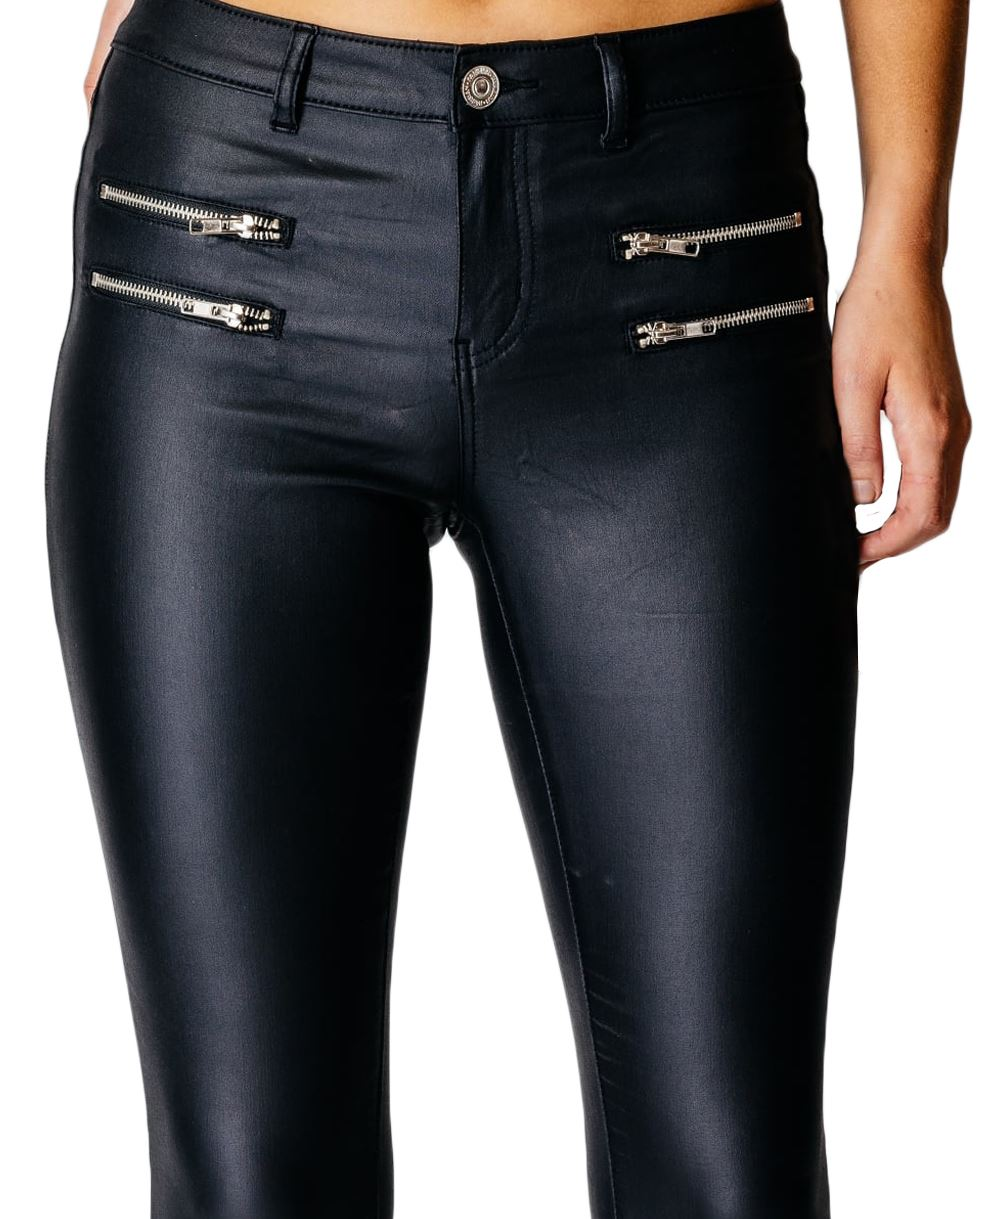 Womens Ladies Black Jeans Plus Pockets Detail High Waisted Zips